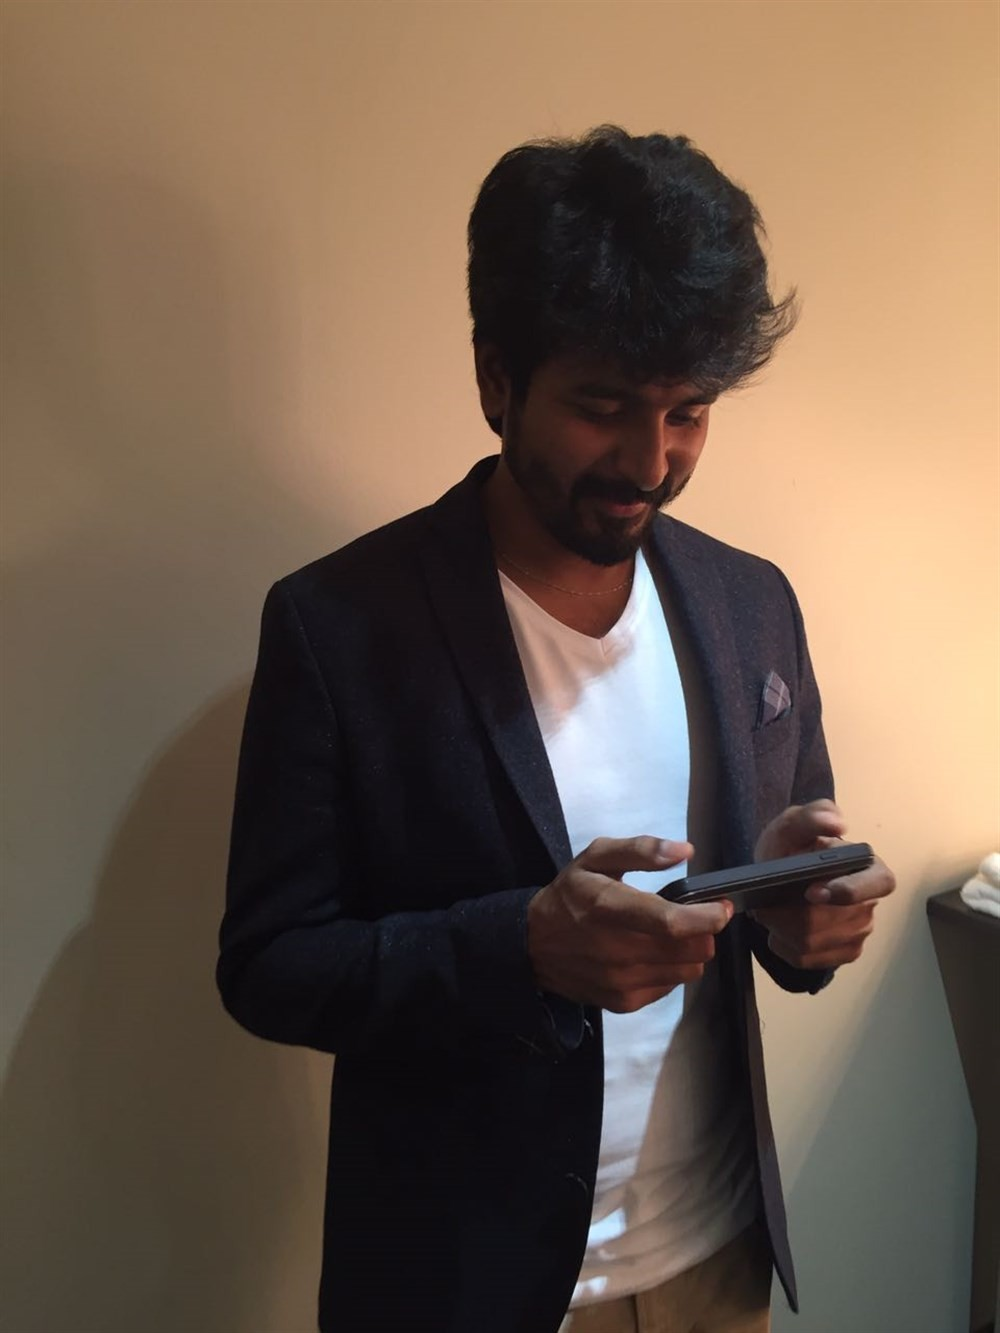 Sivakarthikeyan,actor  Sivakarthikeyan,Remo,Remo actor  Sivakarthikeyan,Kadalai Movie Trailer,Kadalai Trailer,Kadalai Trailer launch,Kadalai Trailer launch pics,Kadalai Trailer launch images,Kadalai Trailer launch photos,Kadalai Trailer launch stills,Kada